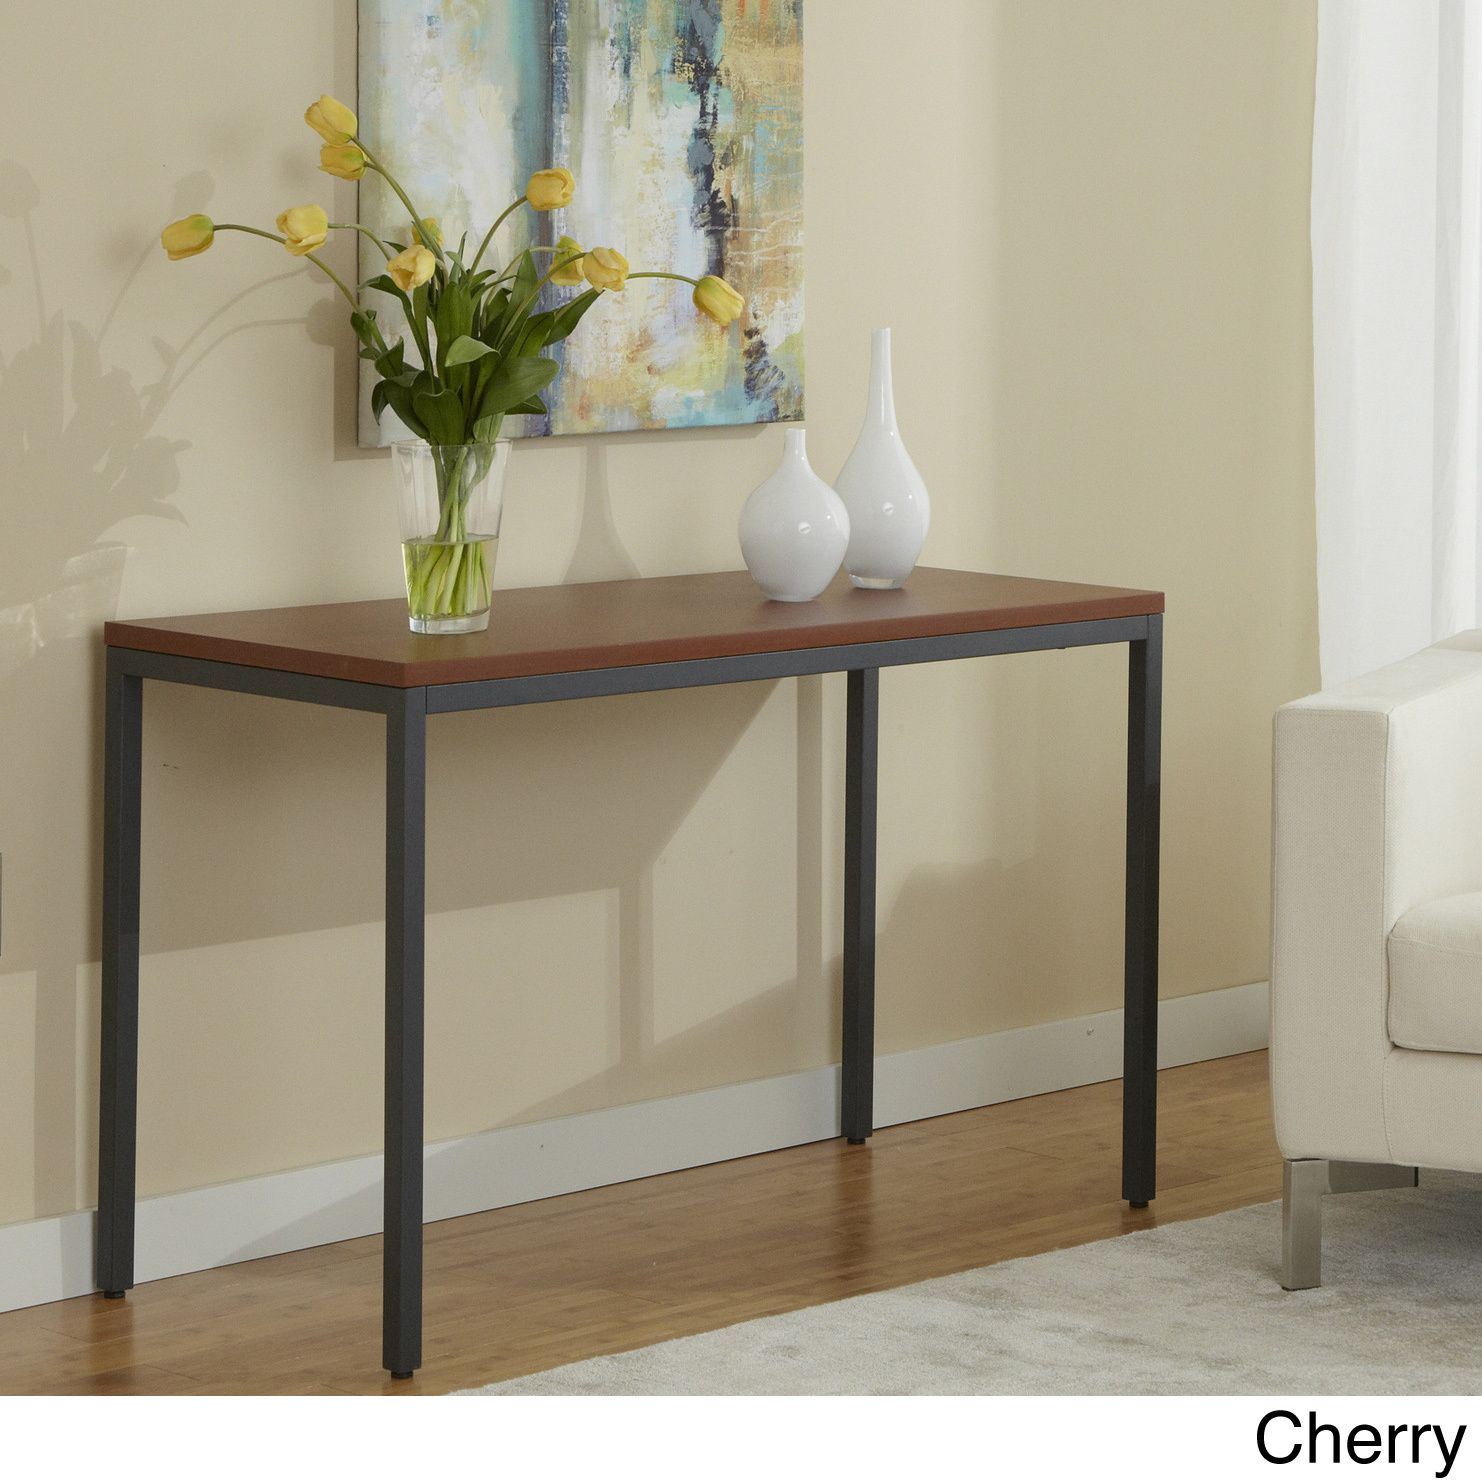 Jesper office contemporary console table by jesper office jesper office contemporary console table by jesper office geotapseo Choice Image